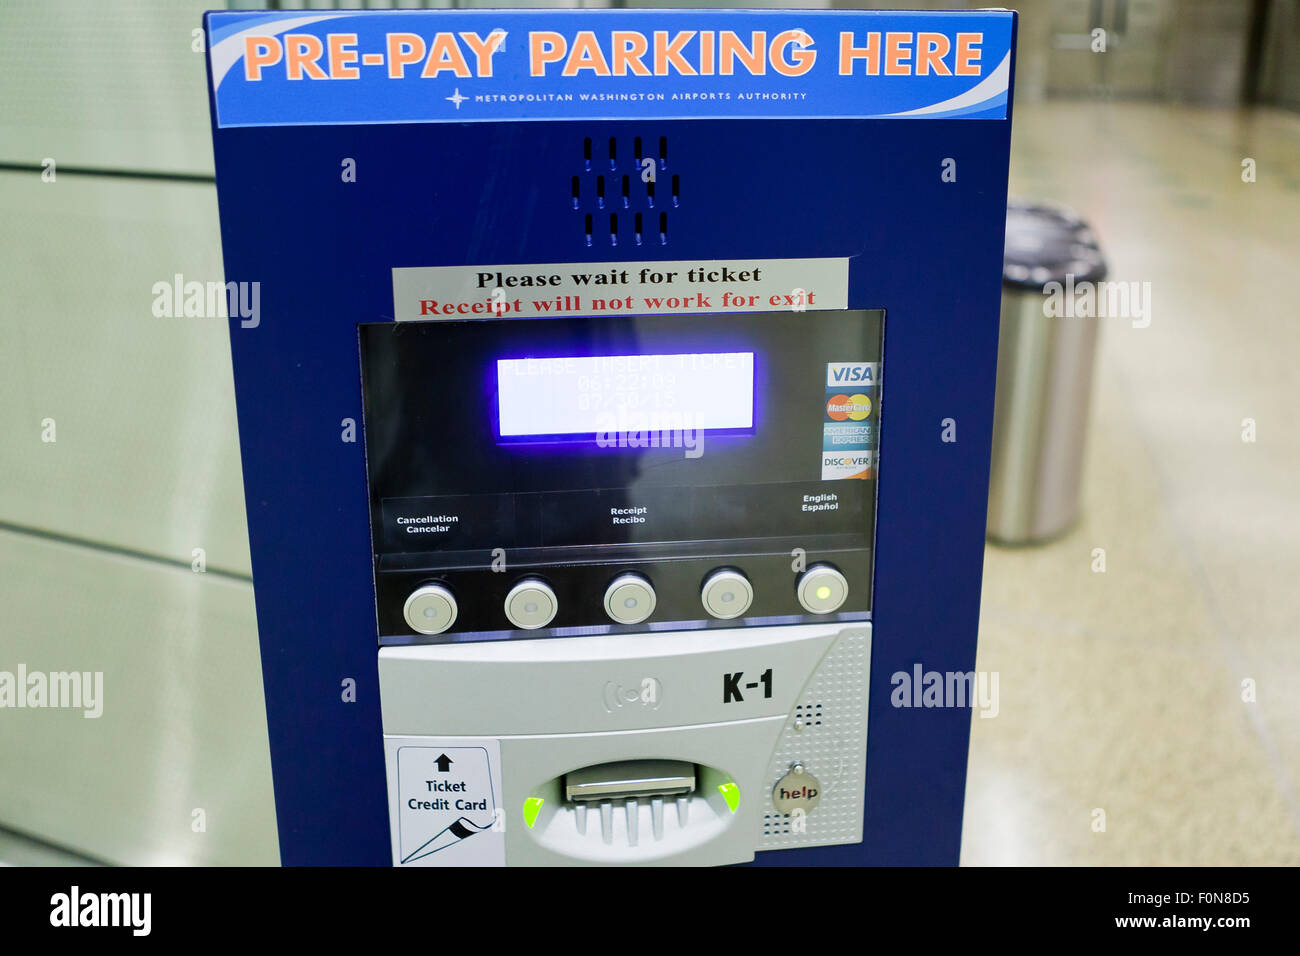 Pre-pay parking meter at airport - USA - Stock Image